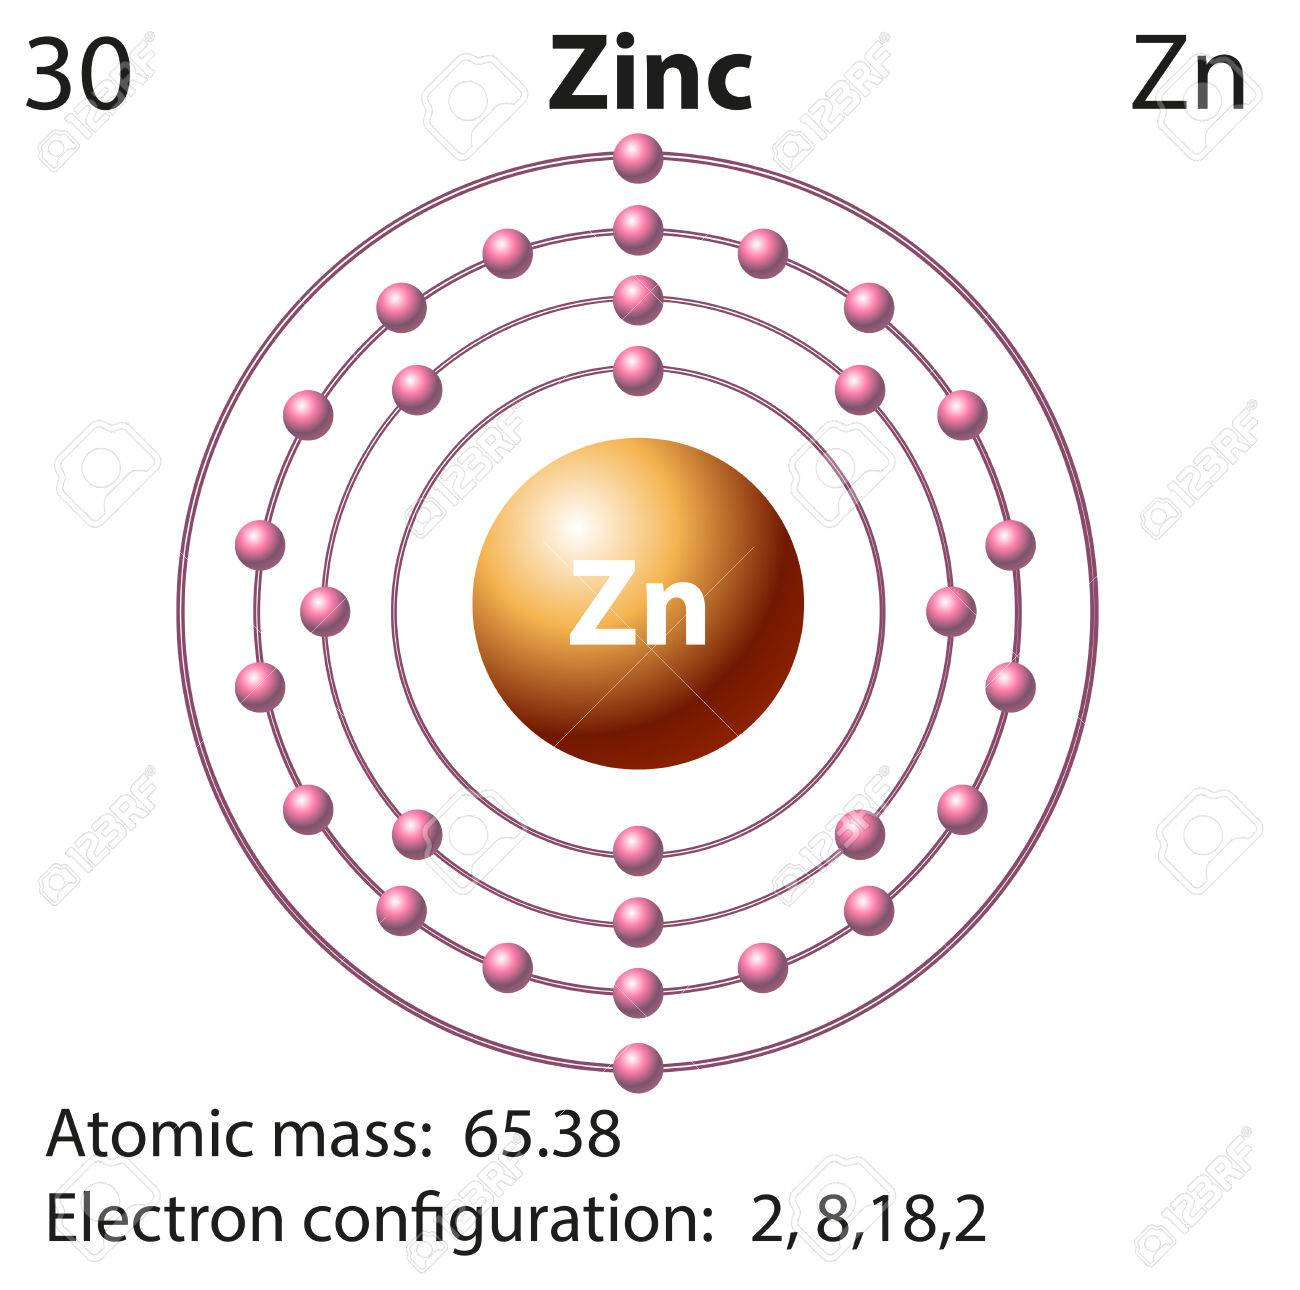 Symbol and electron diagram for zinc illustration royalty free symbol and electron diagram for zinc illustration stock vector 45521015 ccuart Images